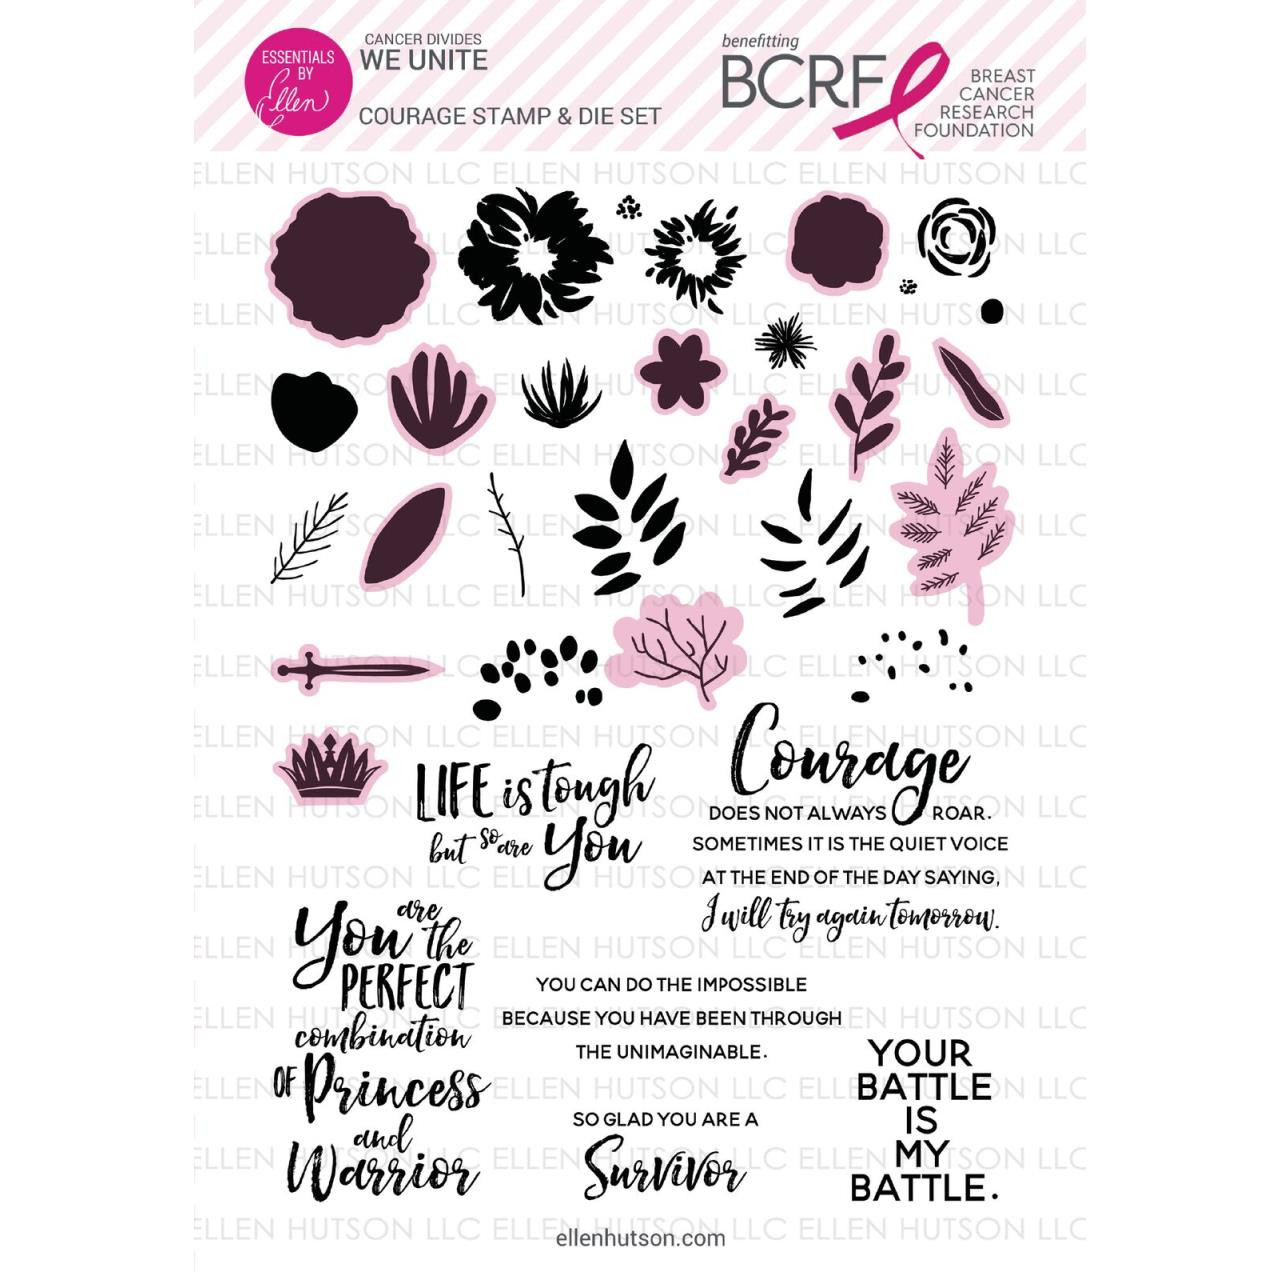 Courage Stamp & Die Set (Fundraiser for Breast Cancer Research Foundation), Essentials by Ellen -